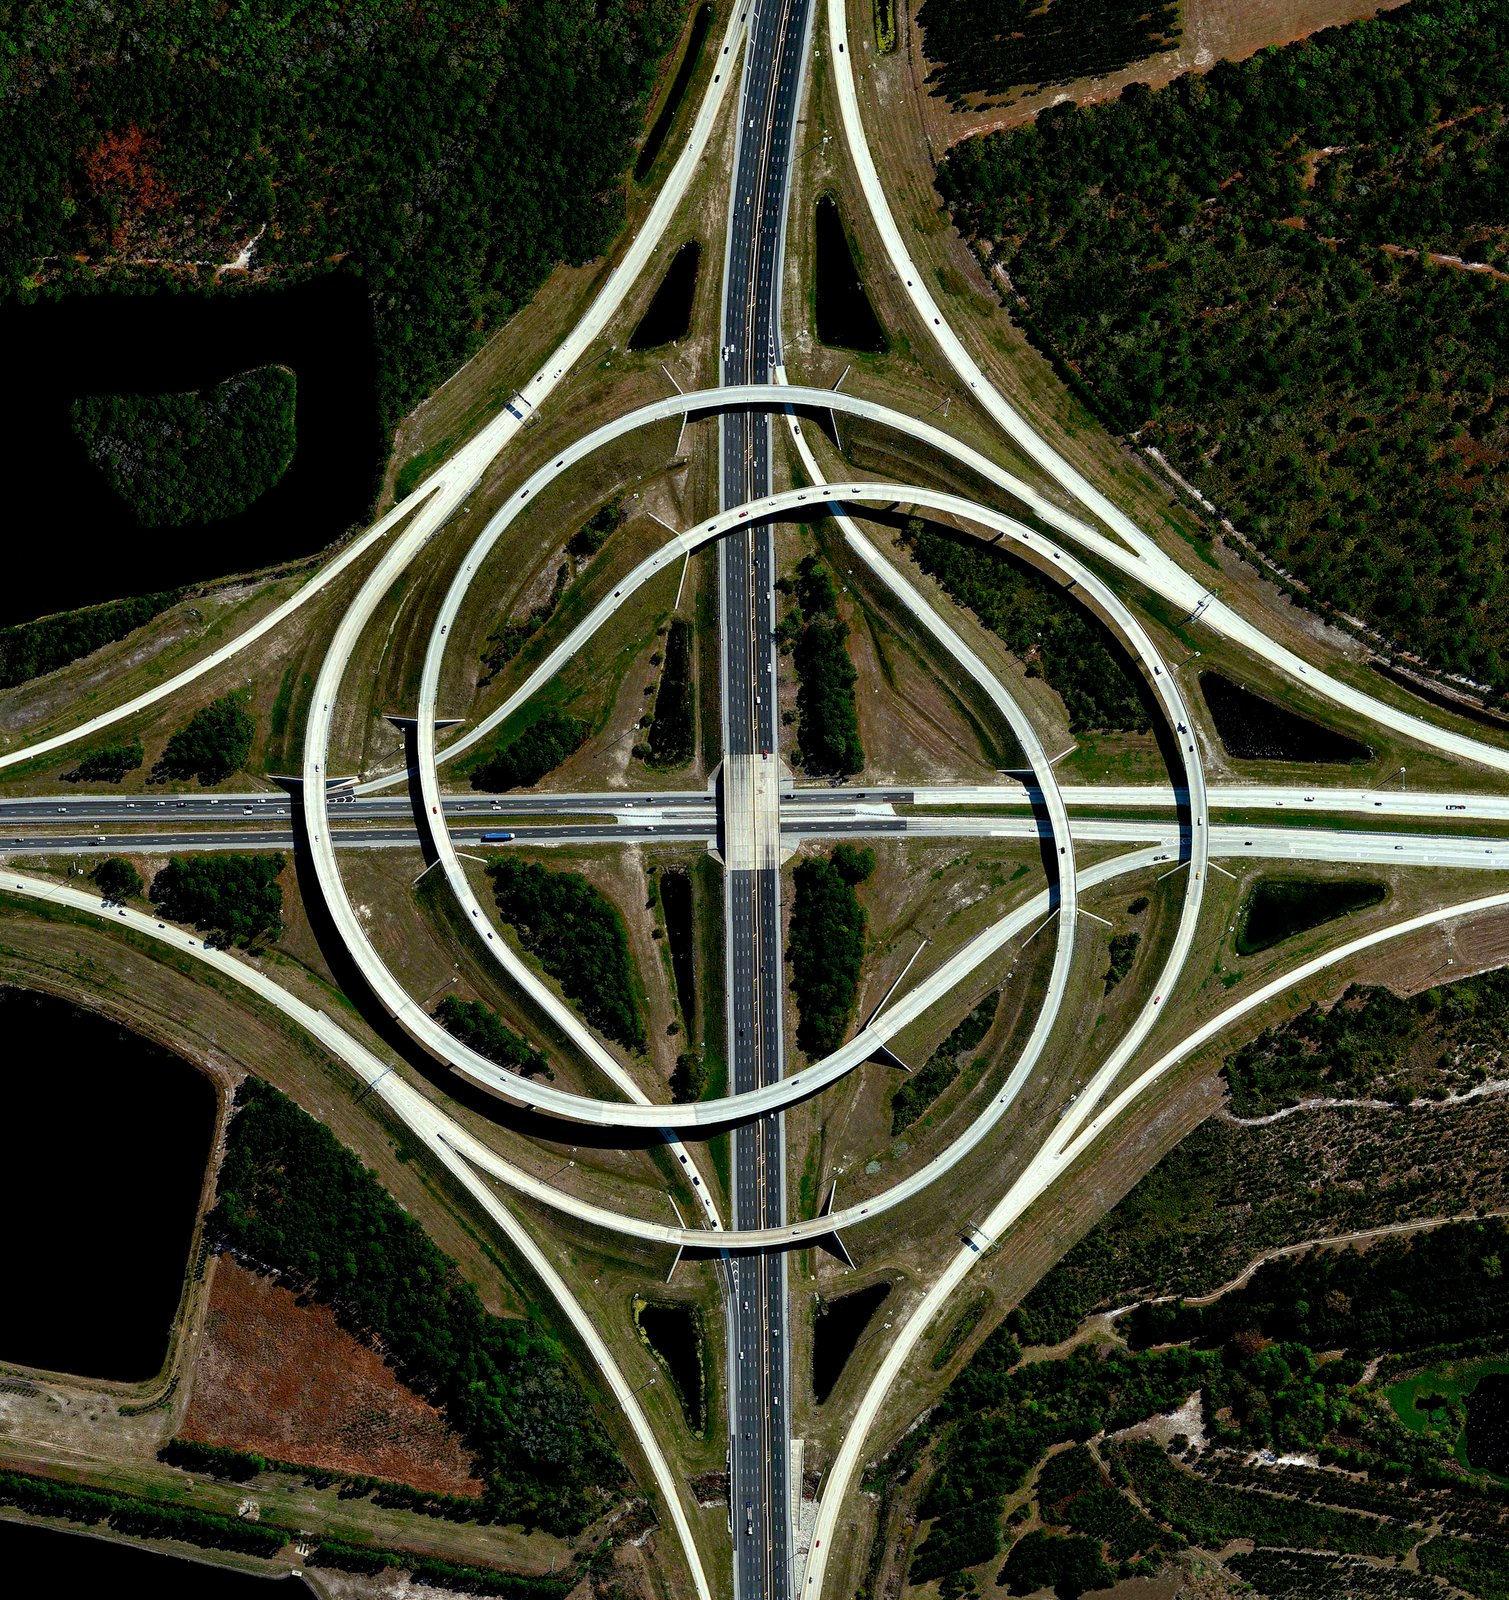 A view of two swirling highways in Jacksonville, Florida. Reprinted with permission from Overview by Benjamin Grant, copyright (c) 2016. Published by Amphoto Books, a division of Penguin Random House, Inc.   Images (c) 2016 by DigitalGlobe, Inc.   Ever Wondered About the View from Space? by Aileen Kwun